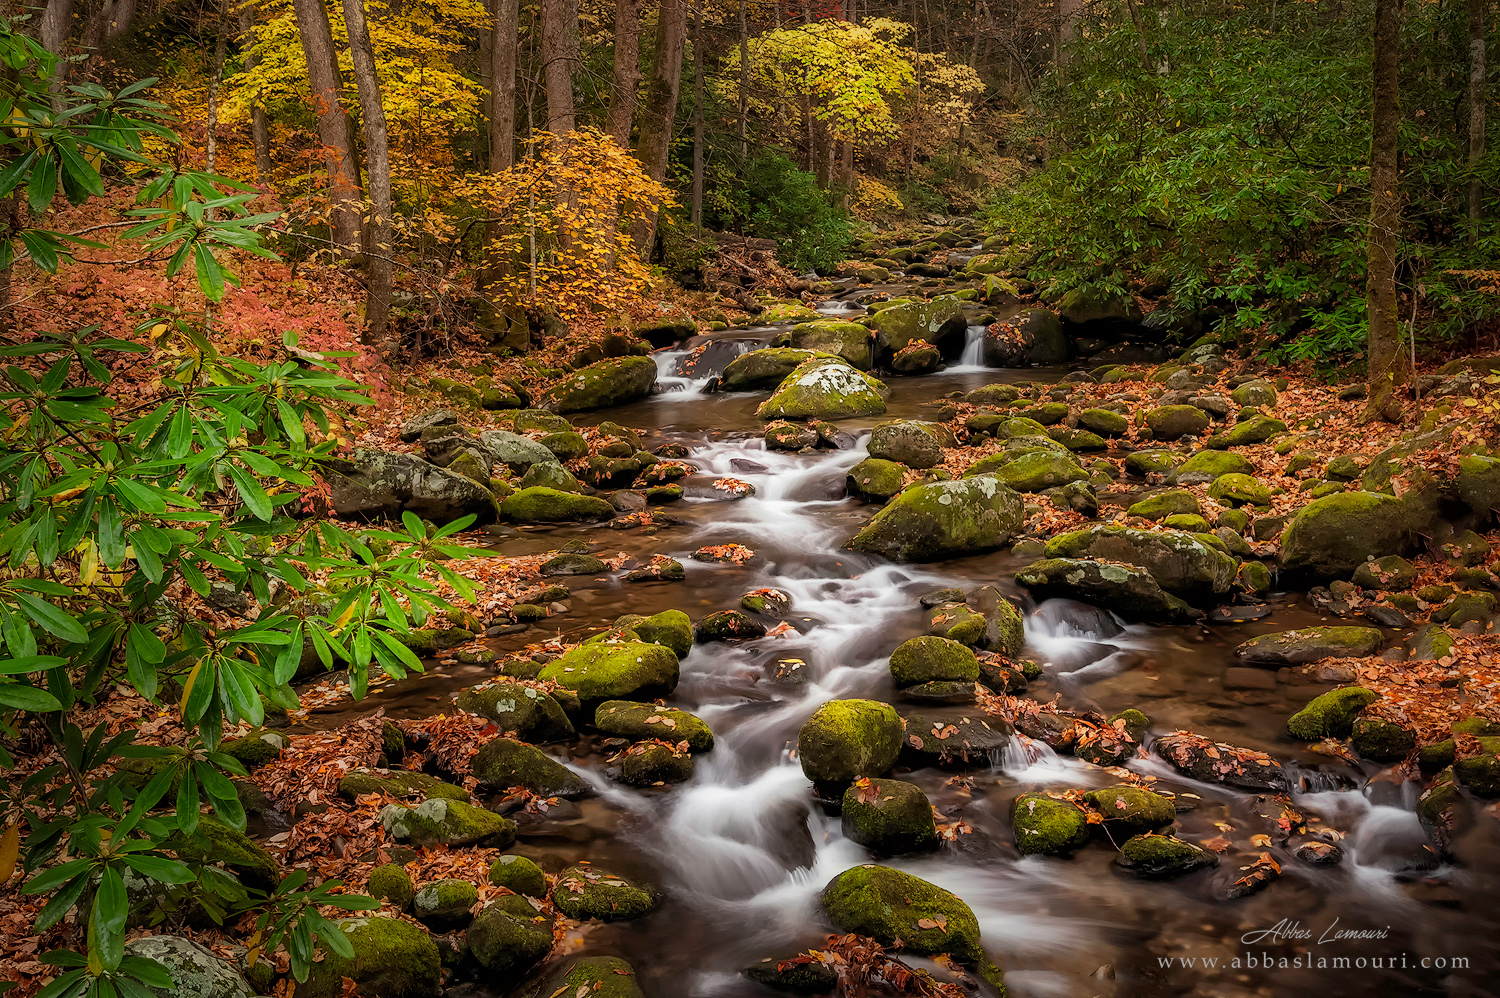 Roaring Fork - Smoky Mountains National Park, Tennessee